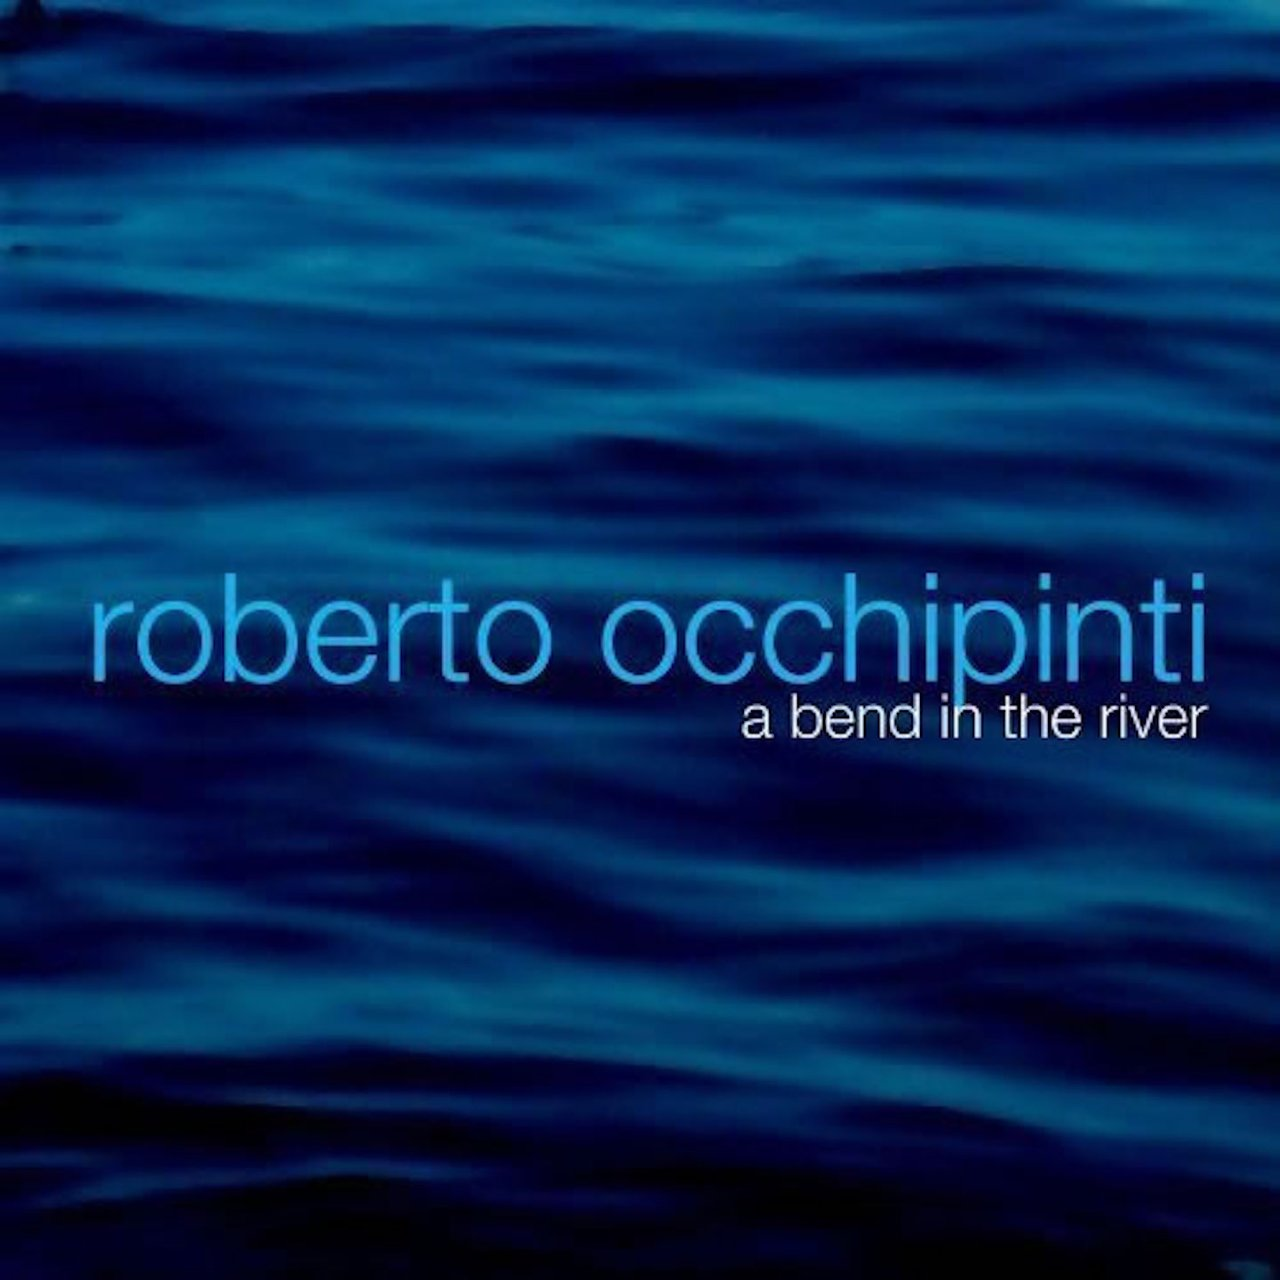 Roberto Occhipinti A Bend in the River.jpg